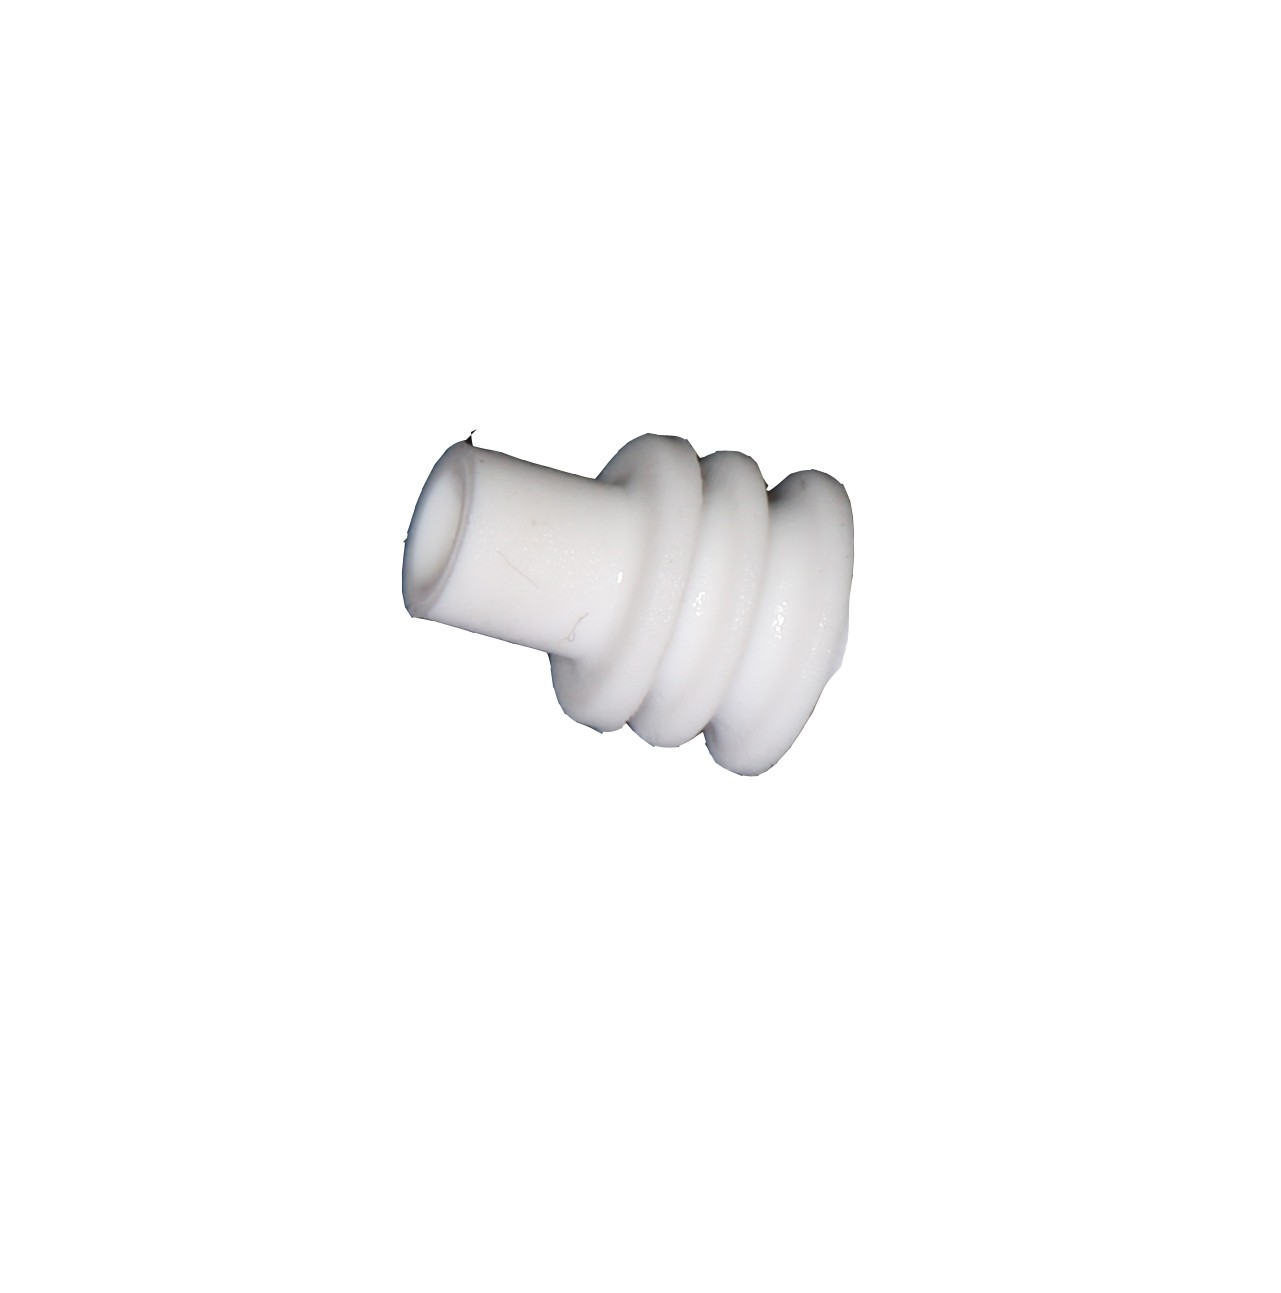 Cable Seal White 2.15-1.60mm O/D